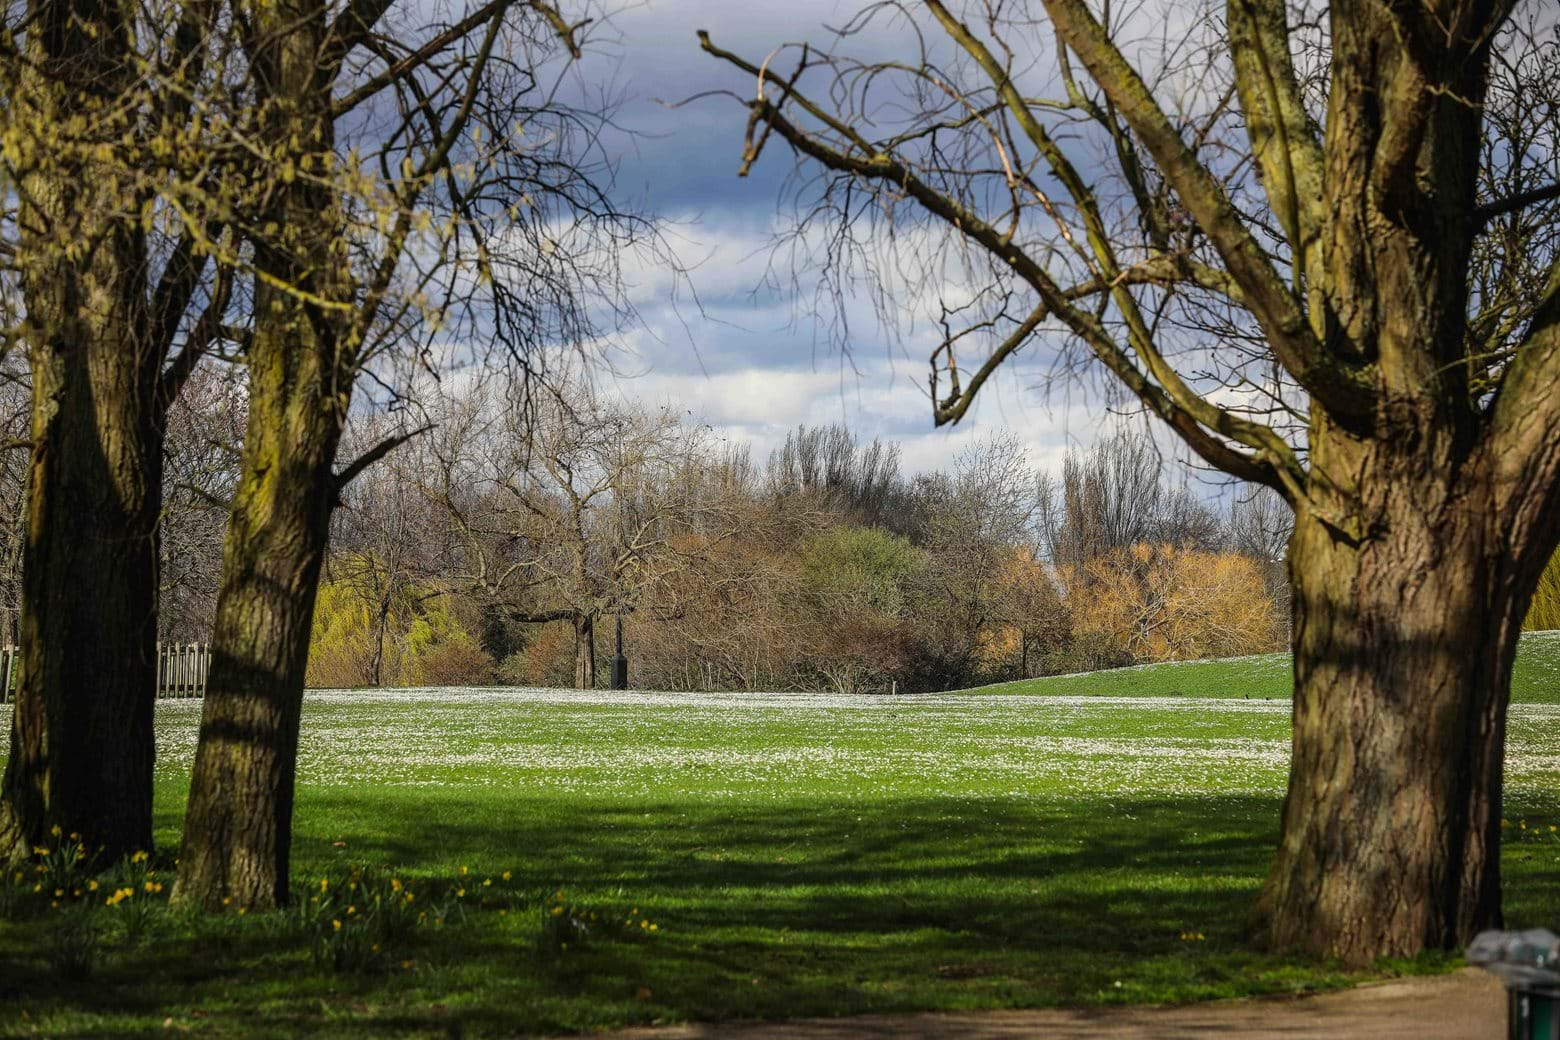 Beckton District Park | Greenway - Local area photography